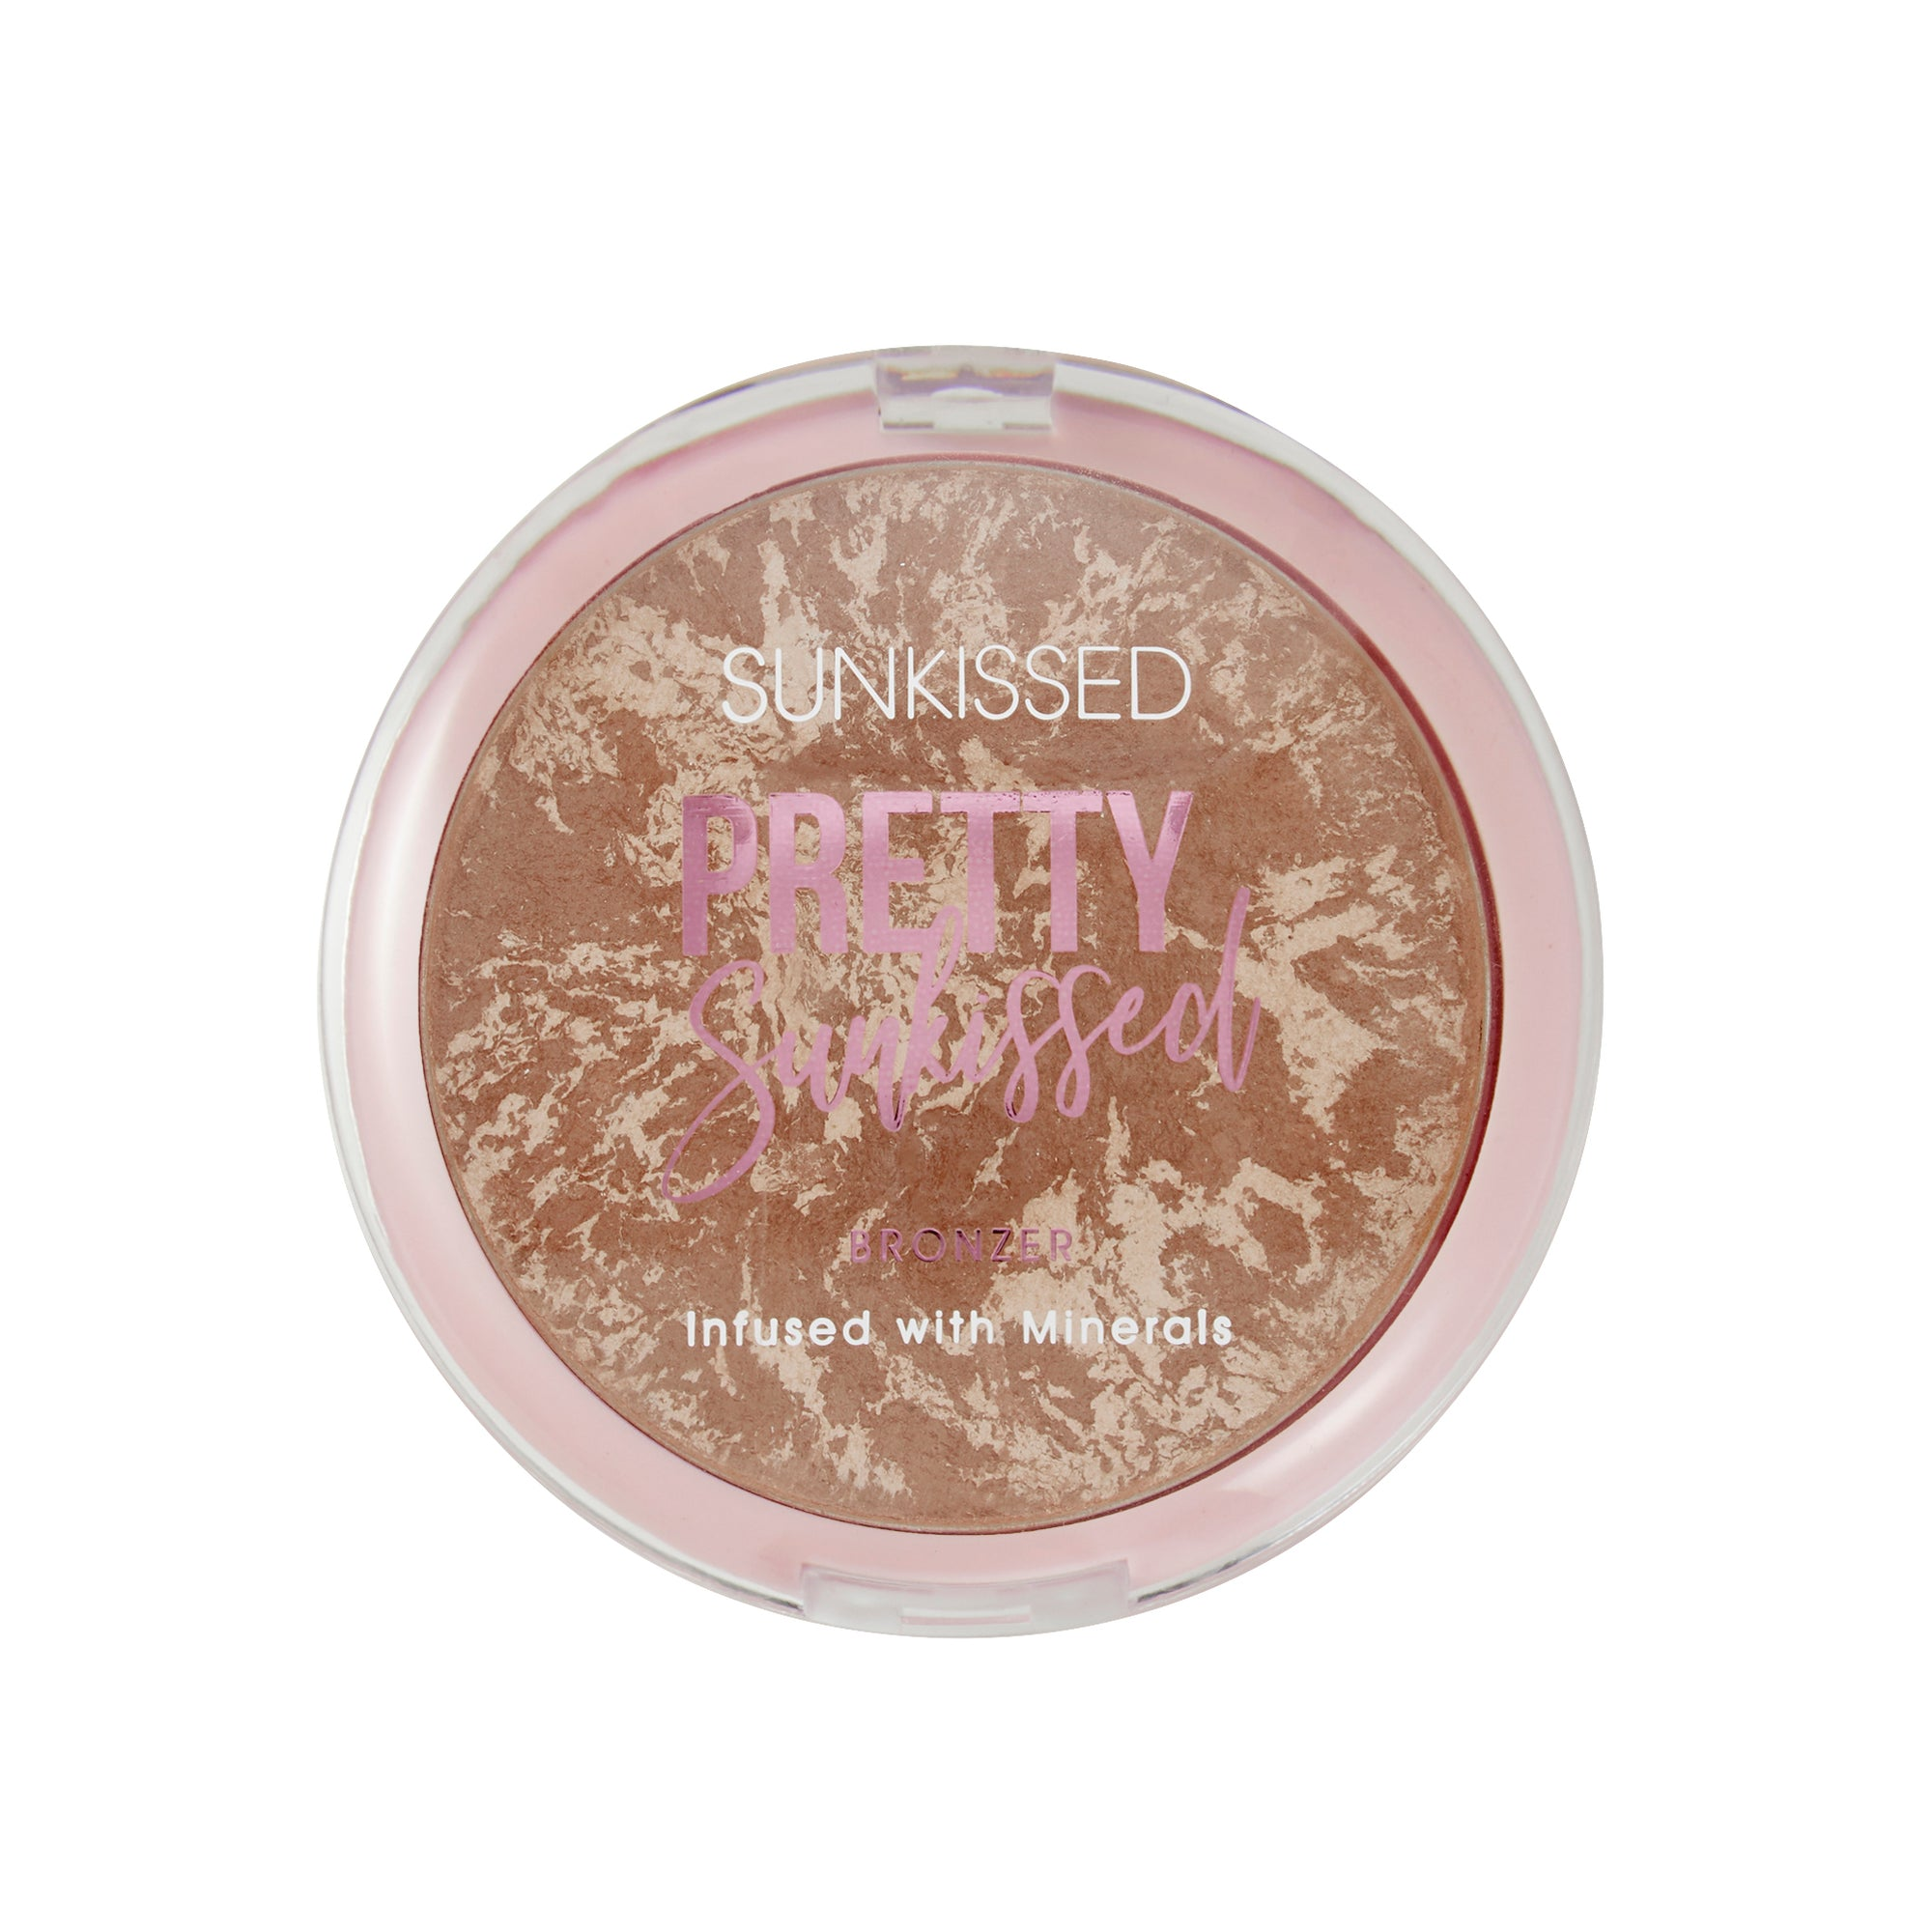 Sunkissed Pretty Sunkissed Bronzer